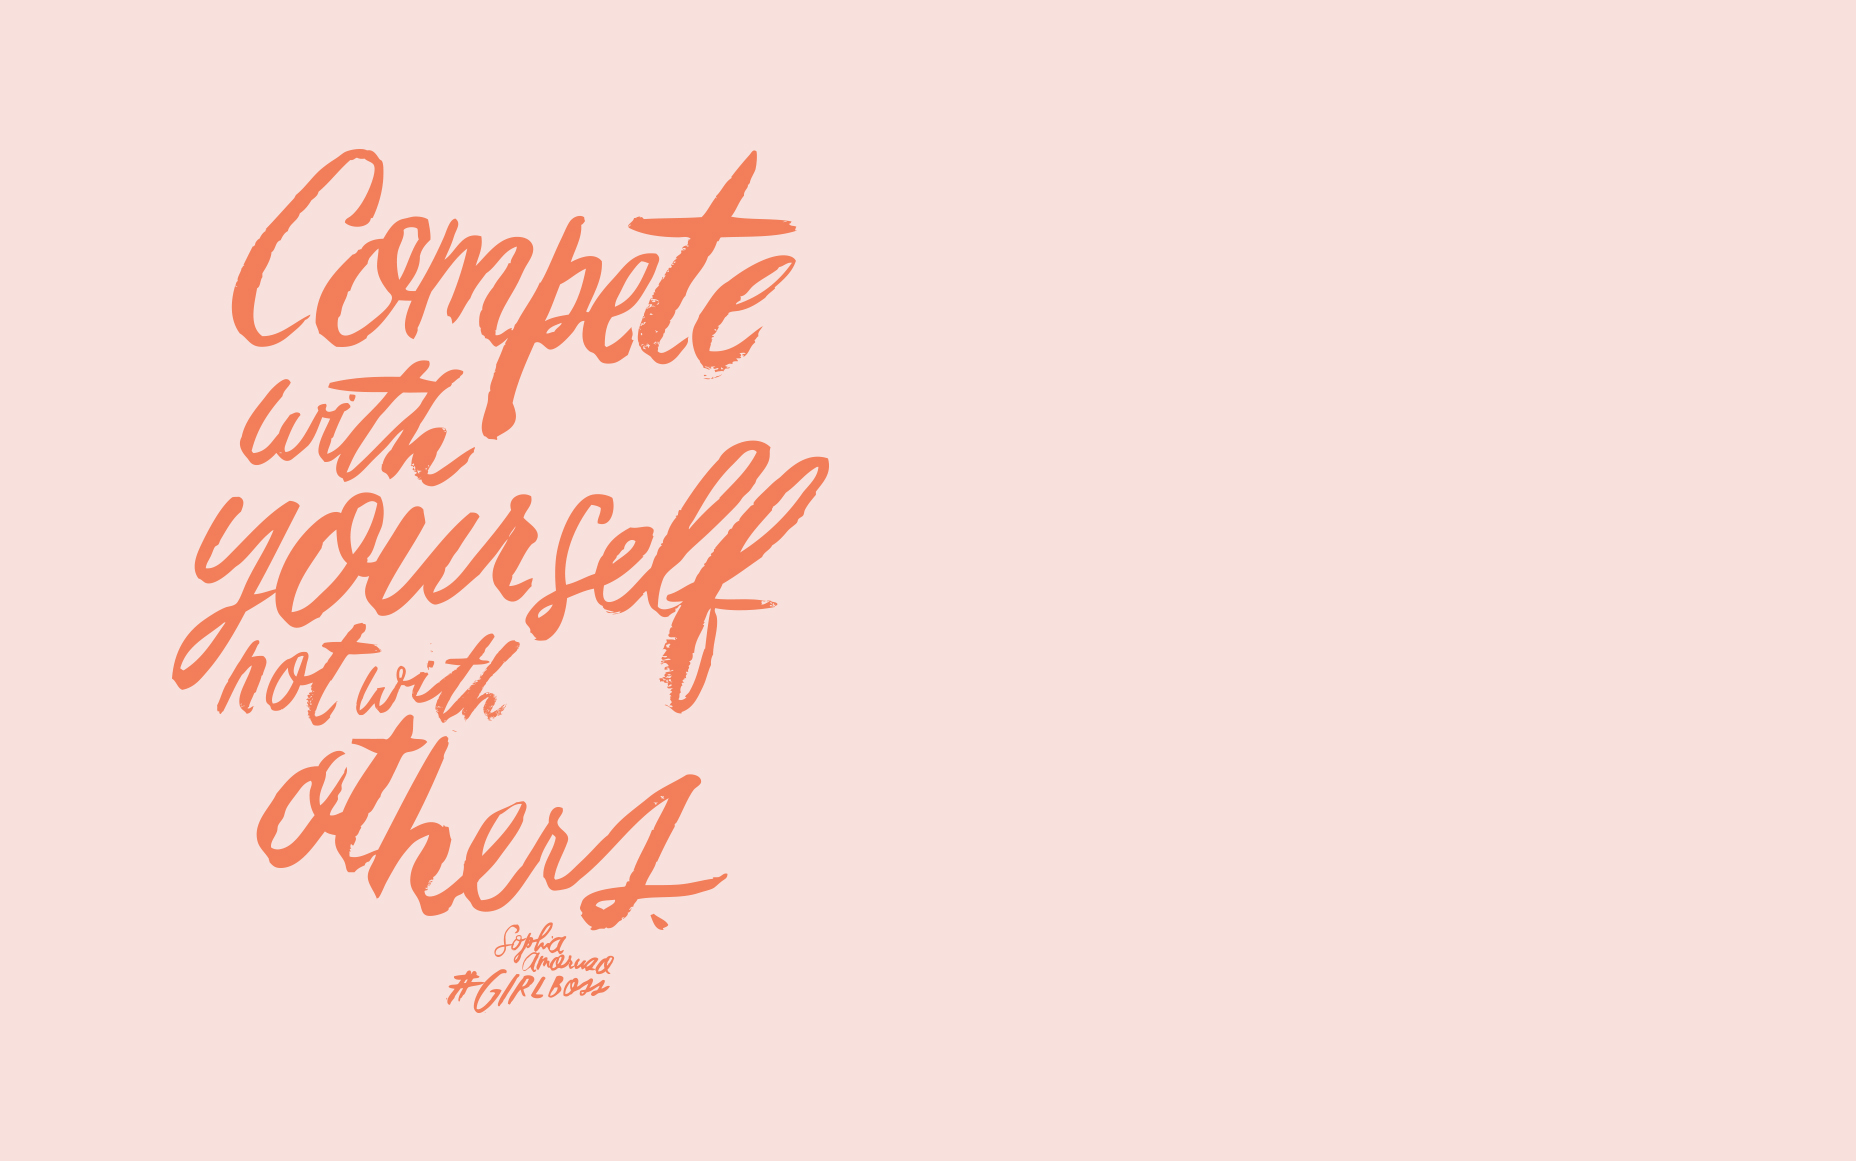 64 Best Motivational Wallpaper Examples With Inspiring Quotes ...